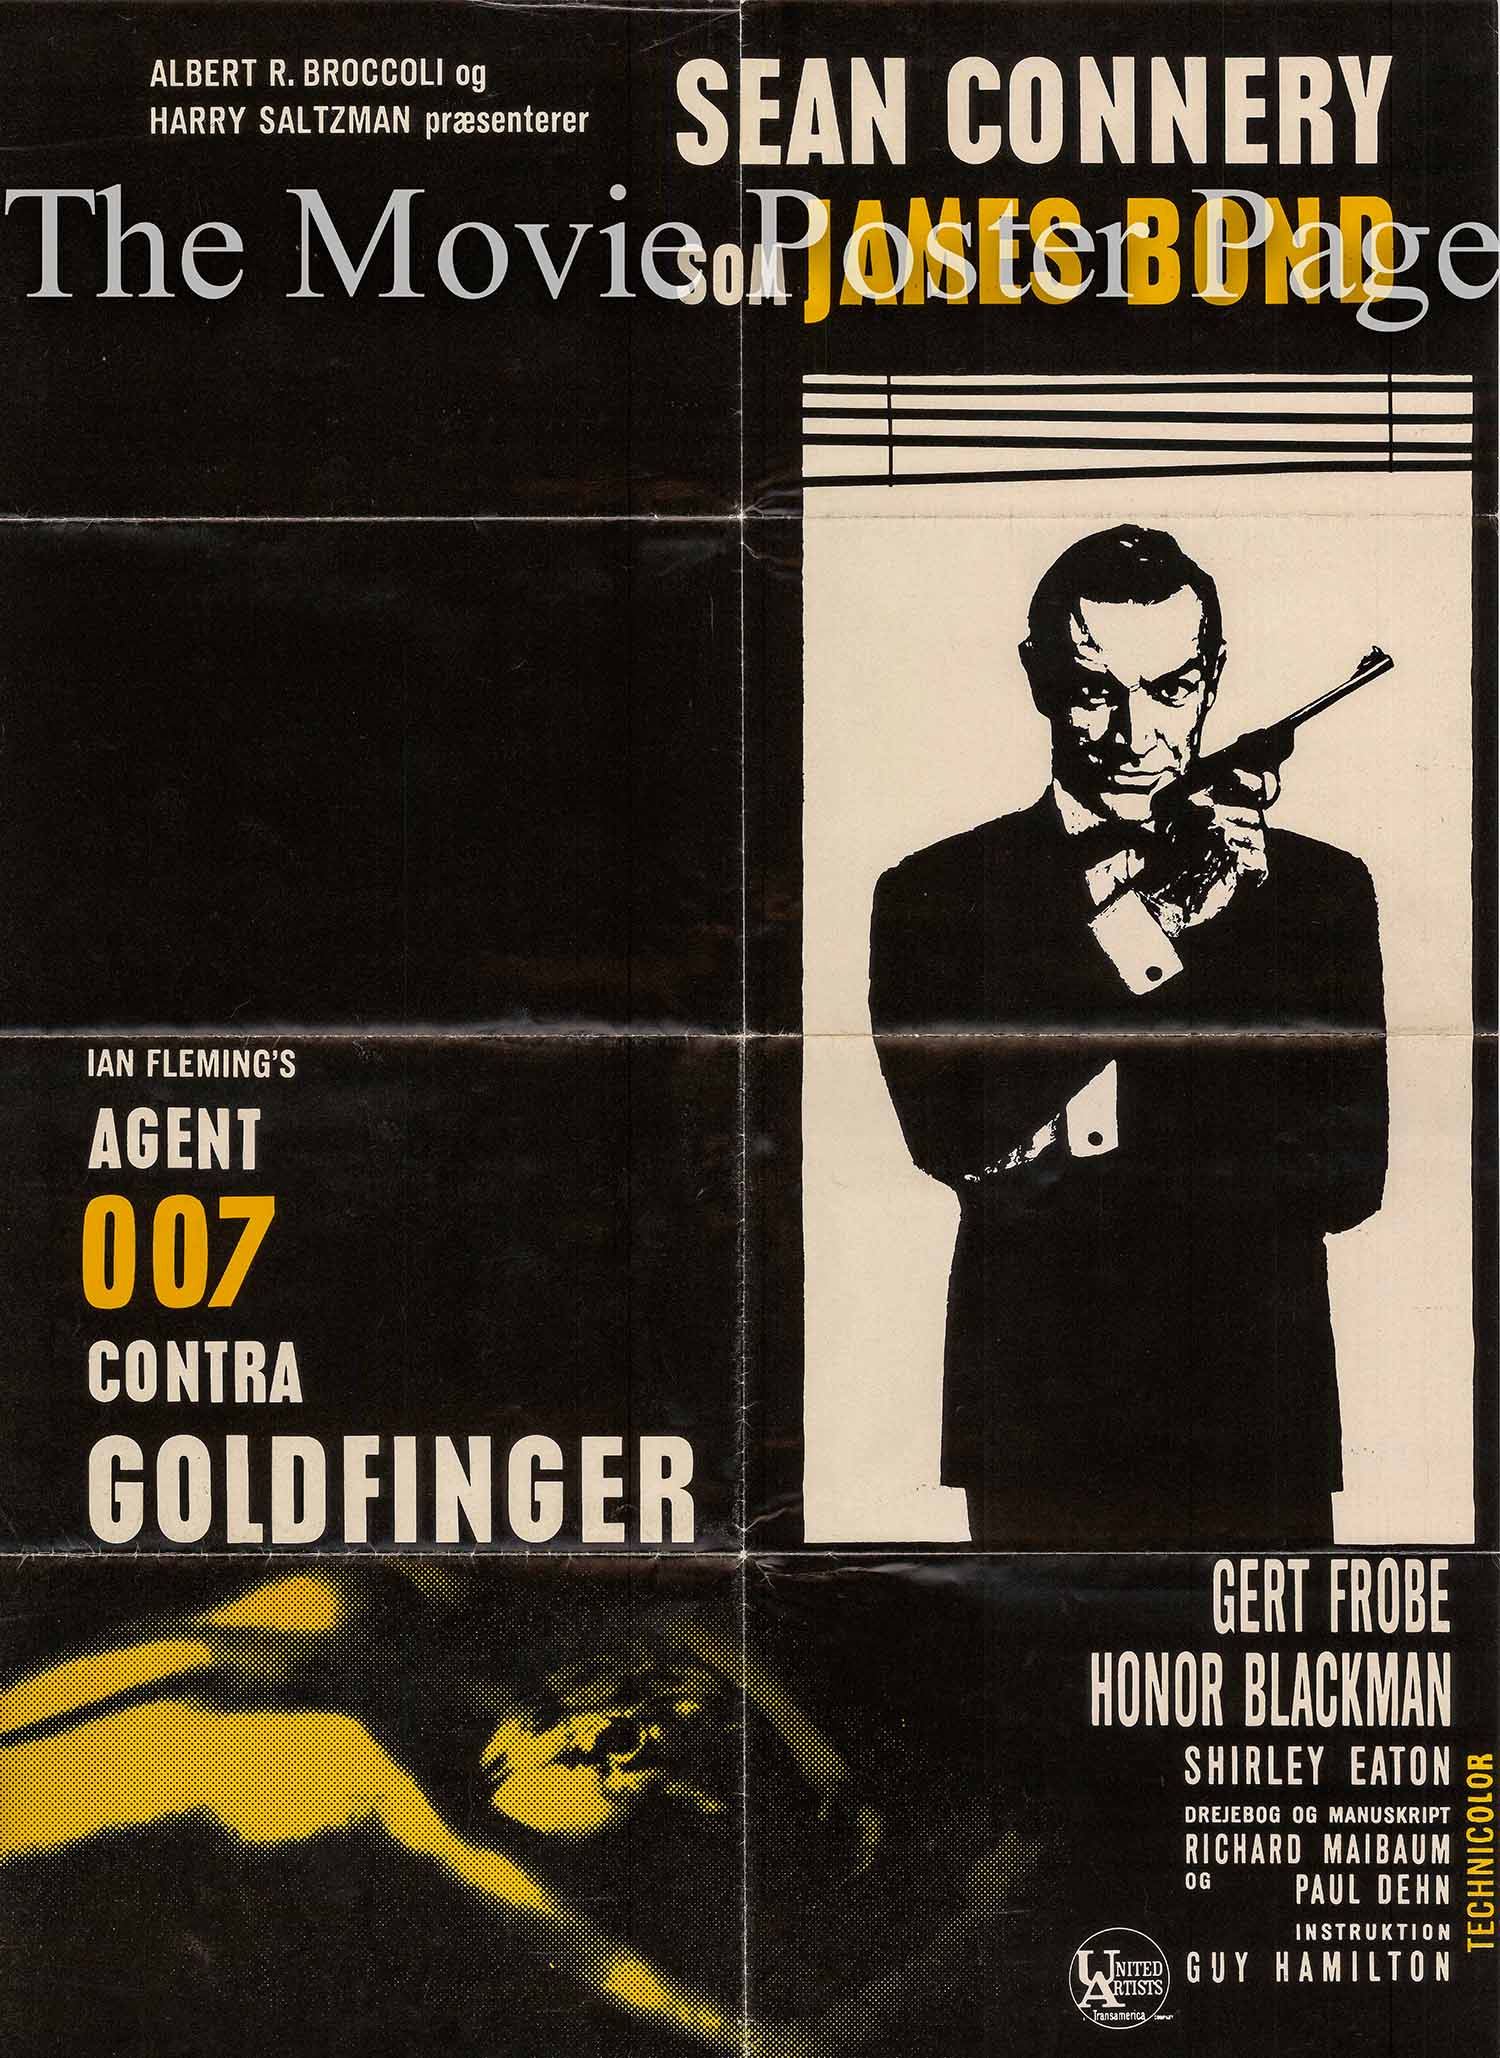 Pictured is a Danish promotional poster made in 1967 for a rerelease of the 1964 Guy Hamilton film Goldfinger starring Sean Connery as James Bond.